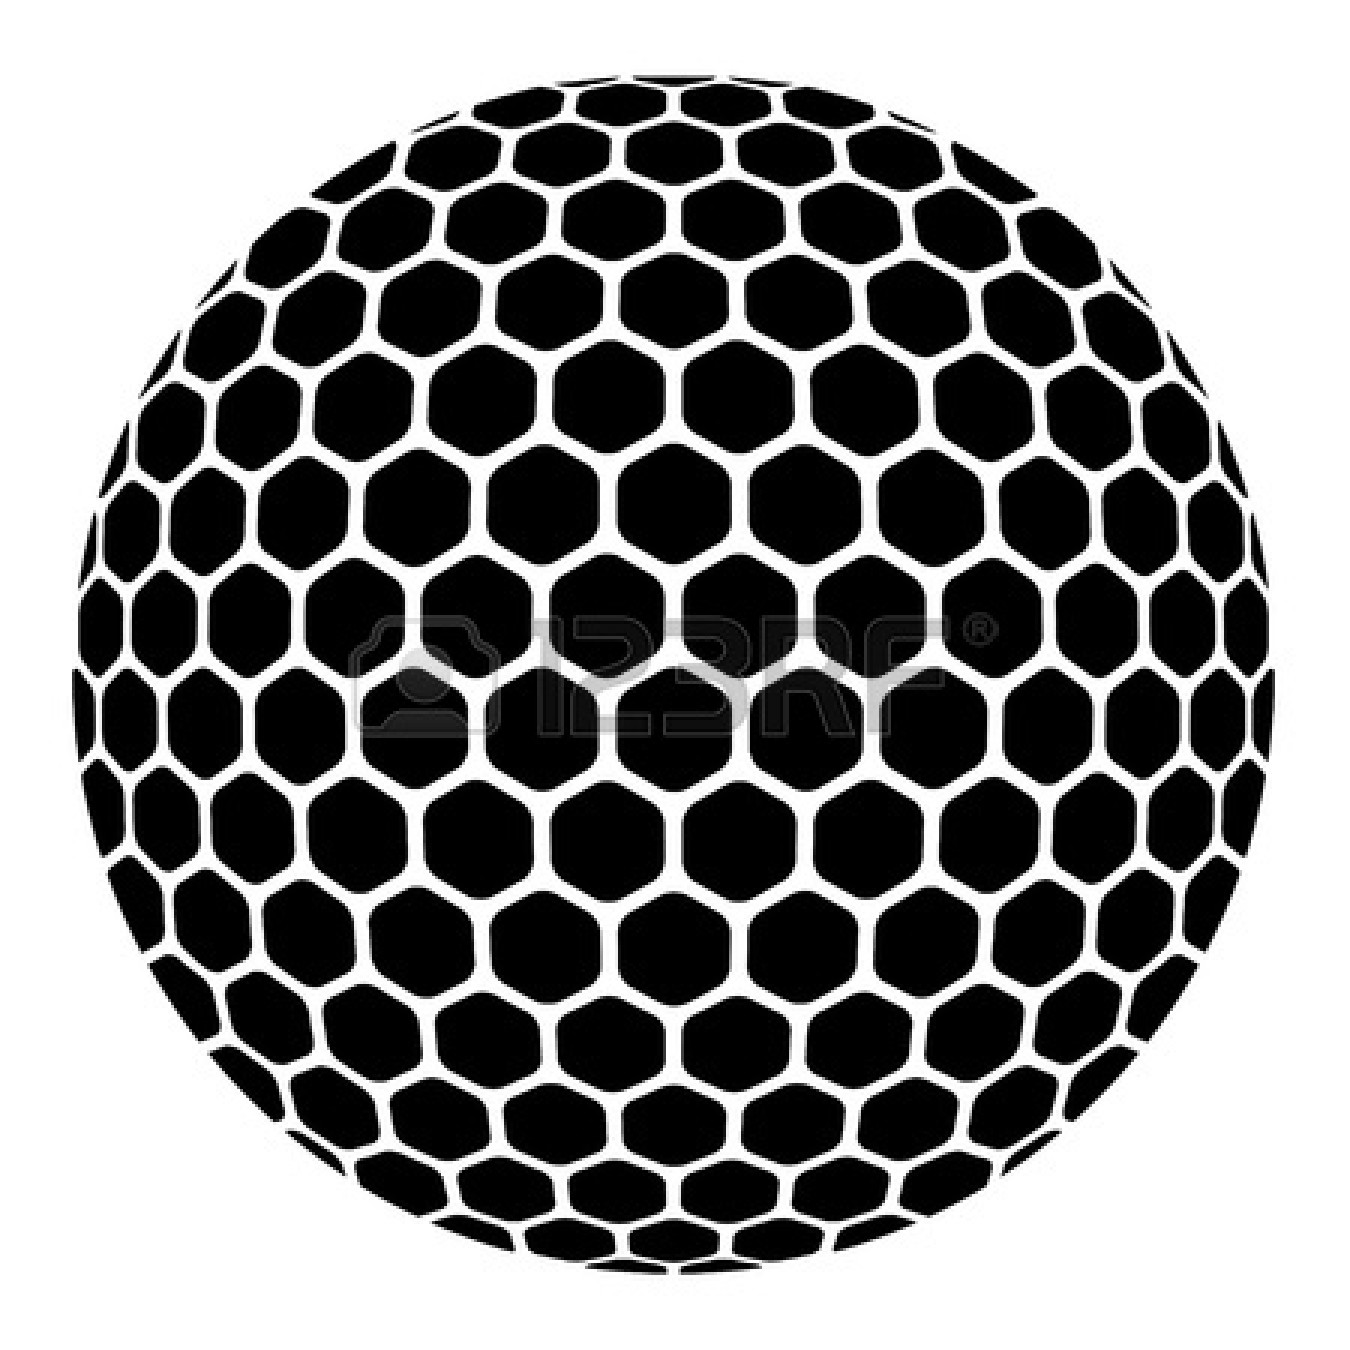 Free Golf Ball Vector Free, Download Free Clip Art, Free Clip Art on.